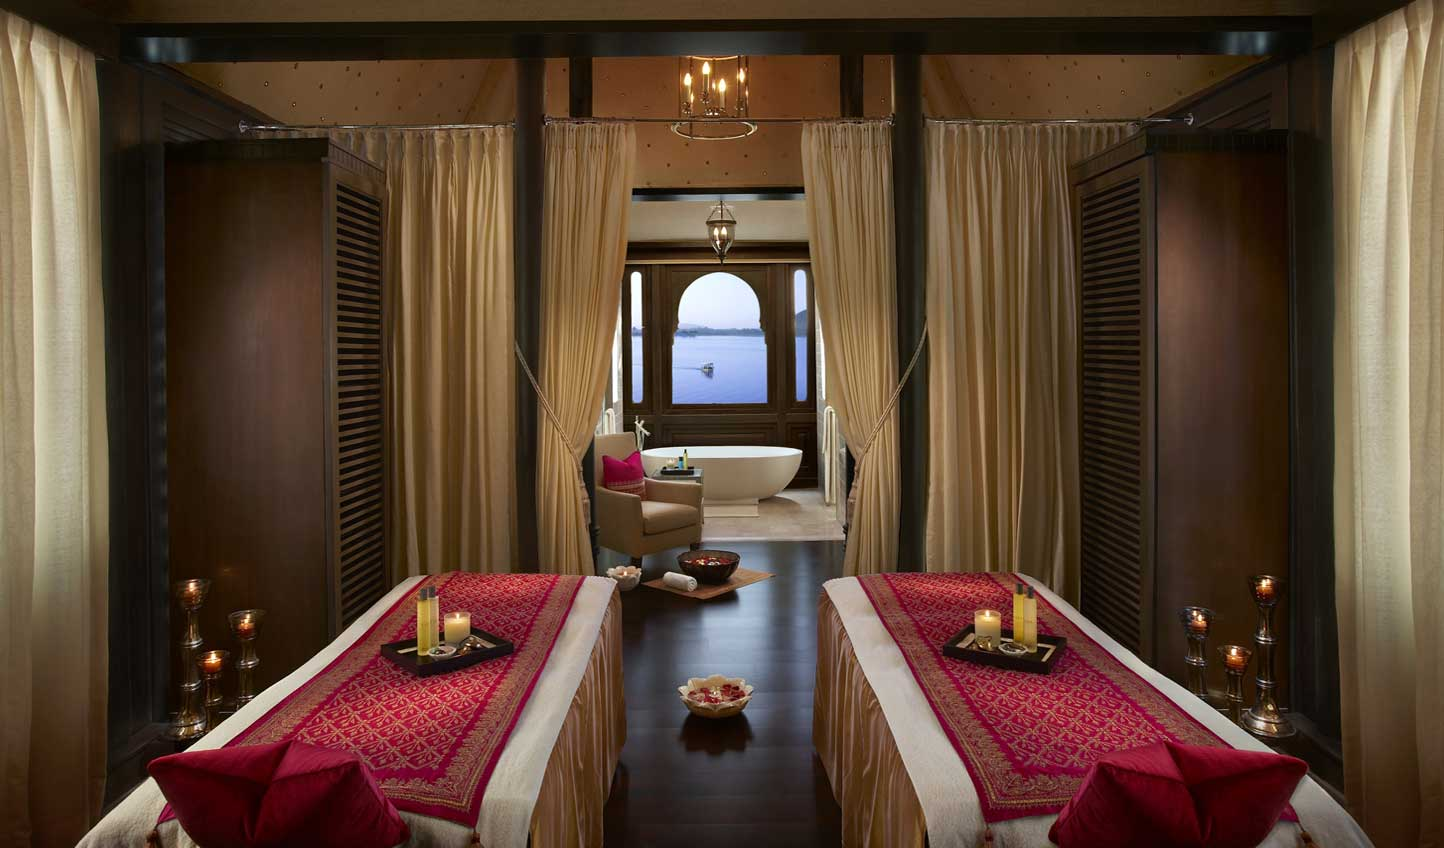 Unwind with a signature Ayurvedic treatment at the spa